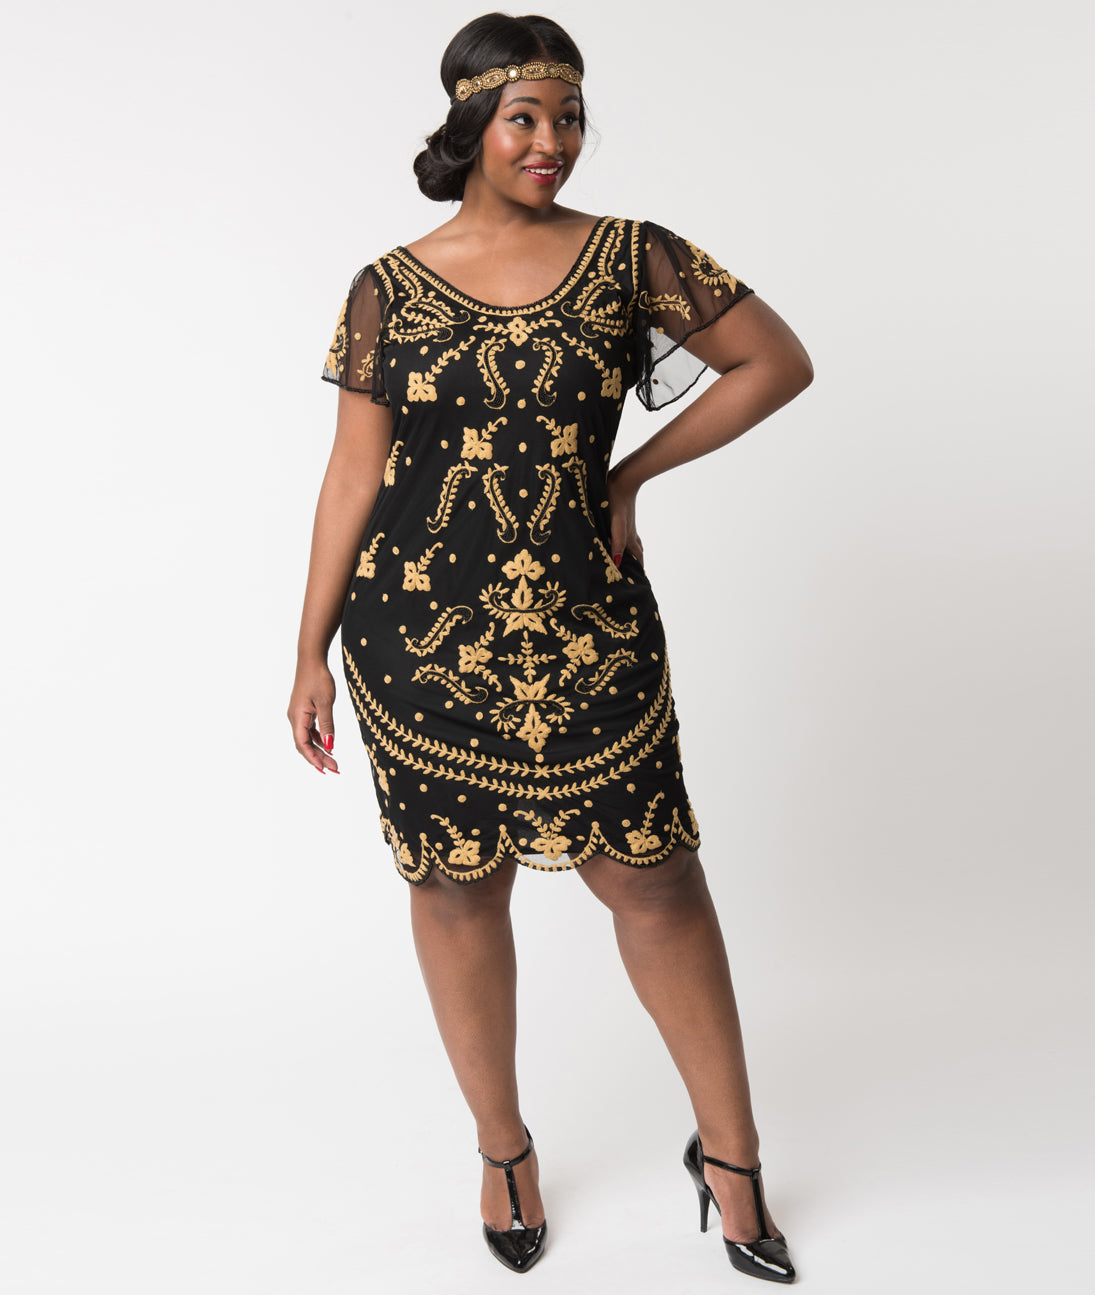 1920s Style Dresses, Flapper Dresses Plus Size Vintage Style Black  Gold Embroidered Florence Flapper Dress $98.00 AT vintagedancer.com